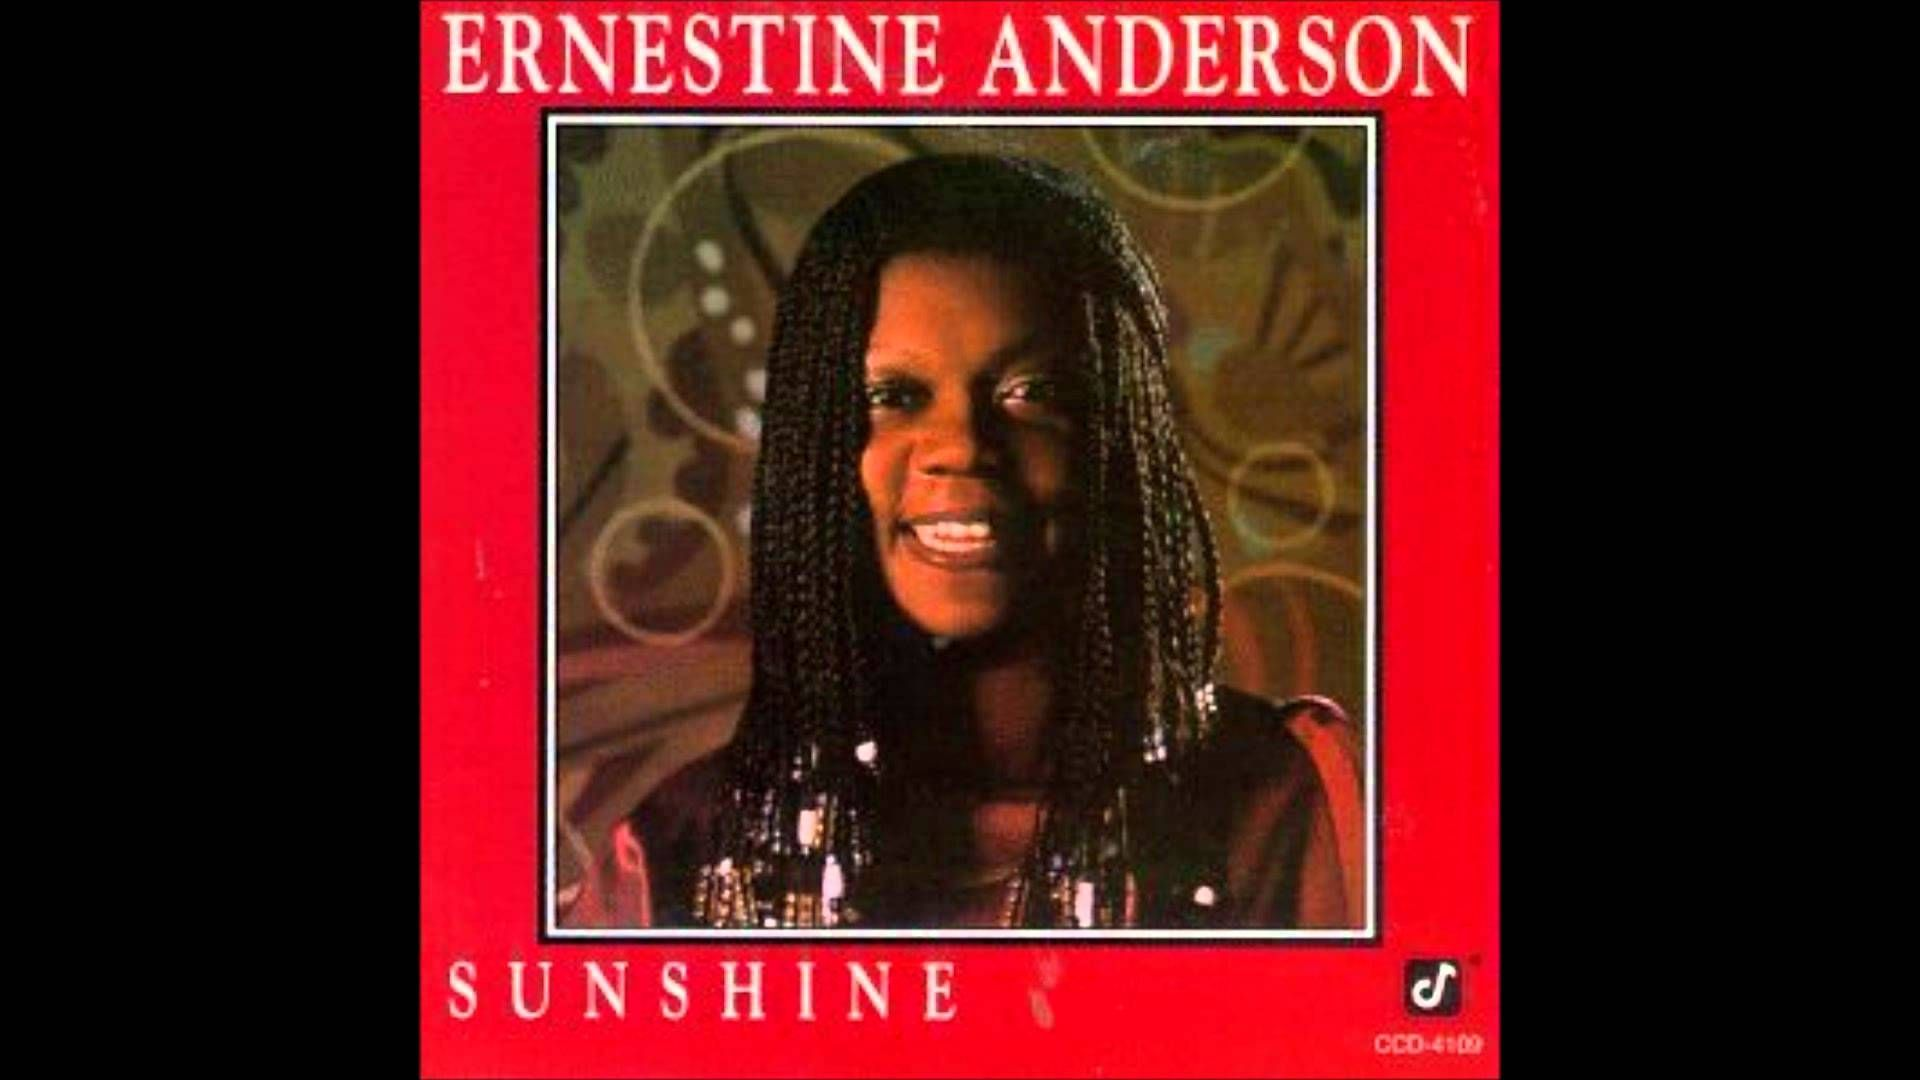 Time After Time - Ernestine Anderson